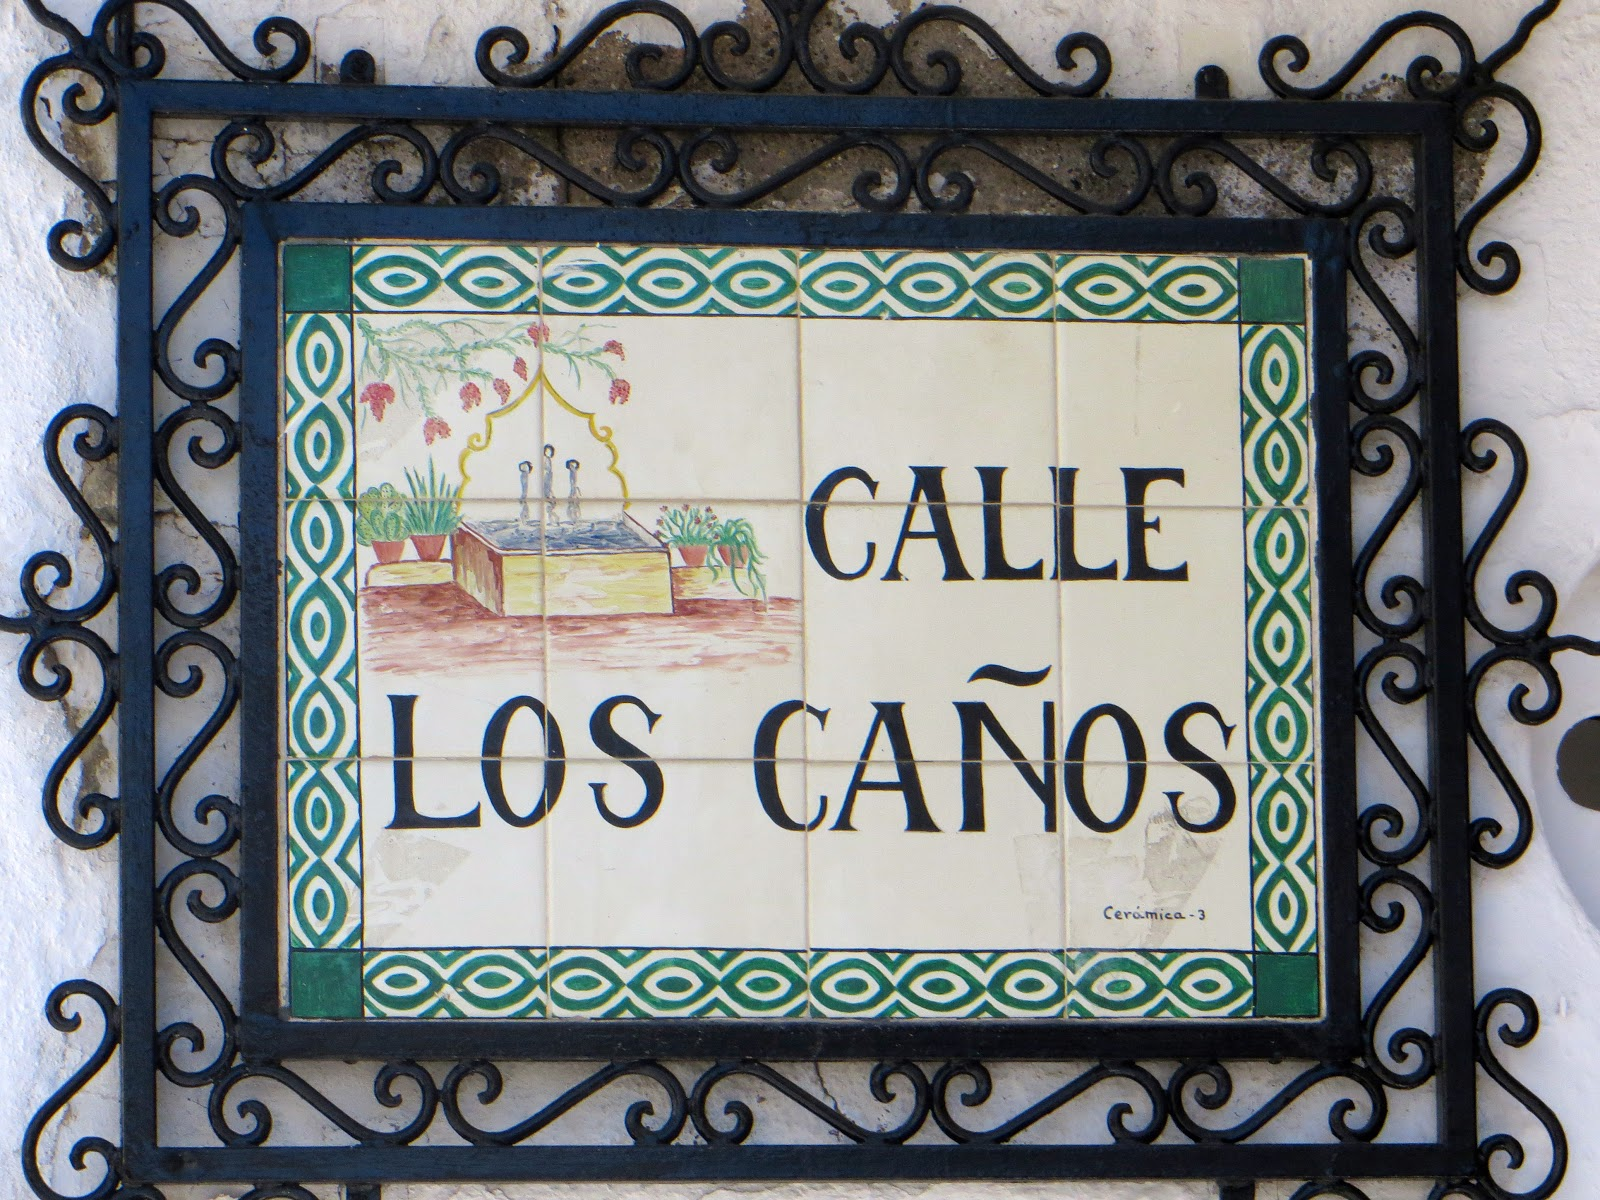 street sign in Mijas